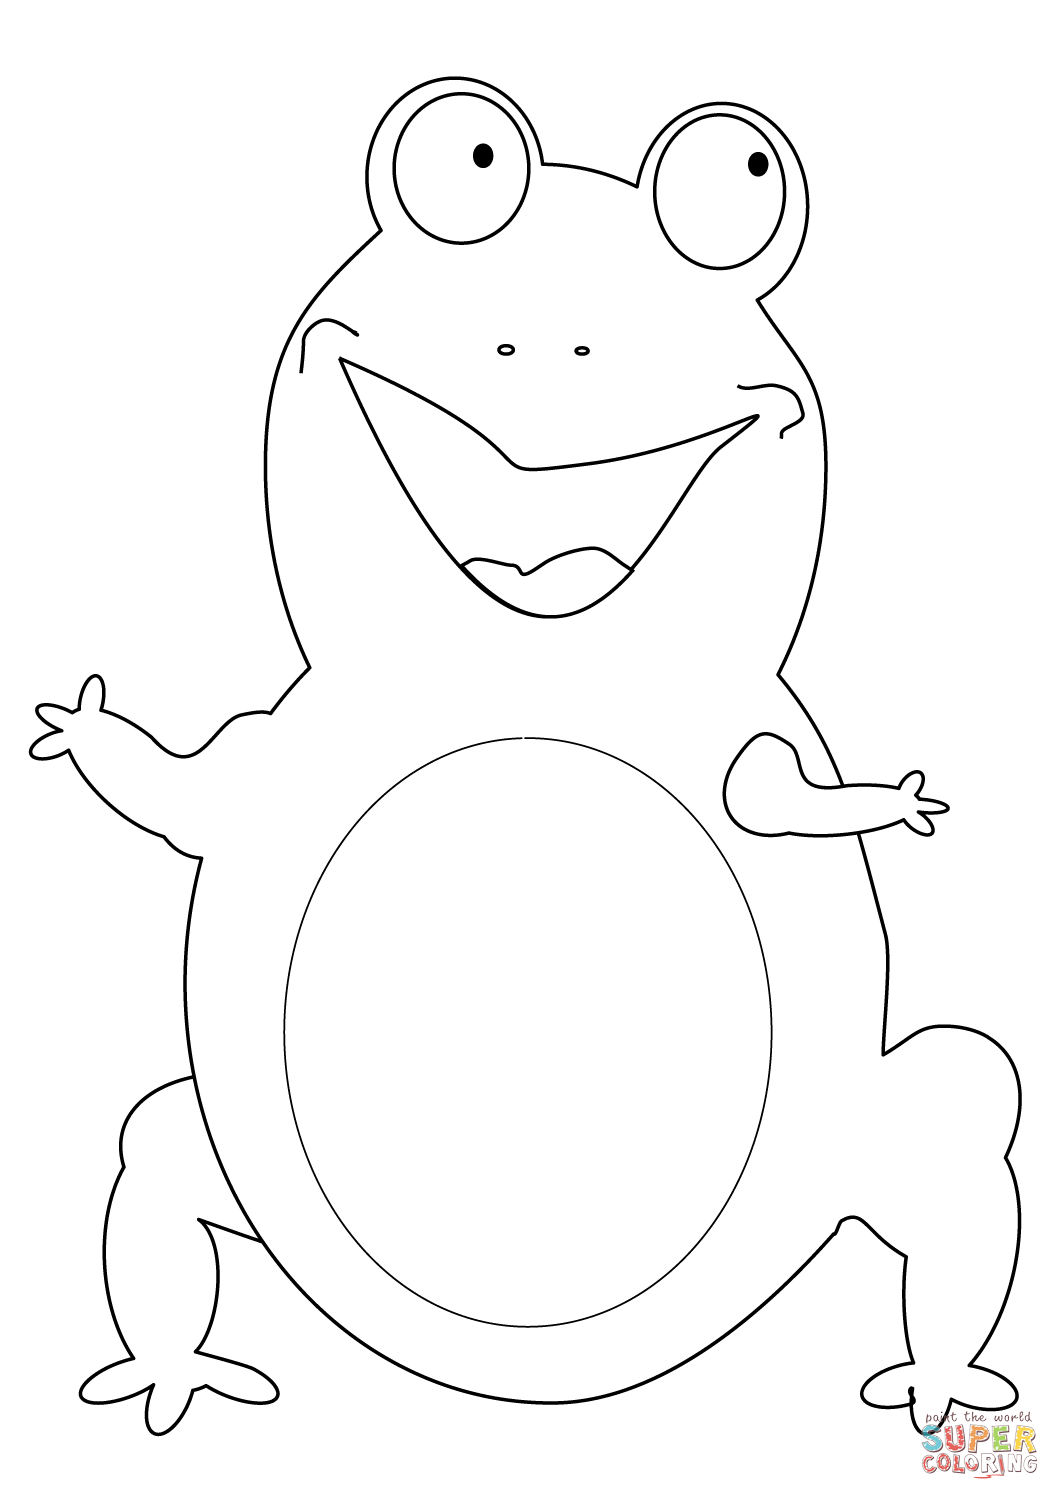 frog face coloring page frog coloring pages getcoloringpagescom page face coloring frog